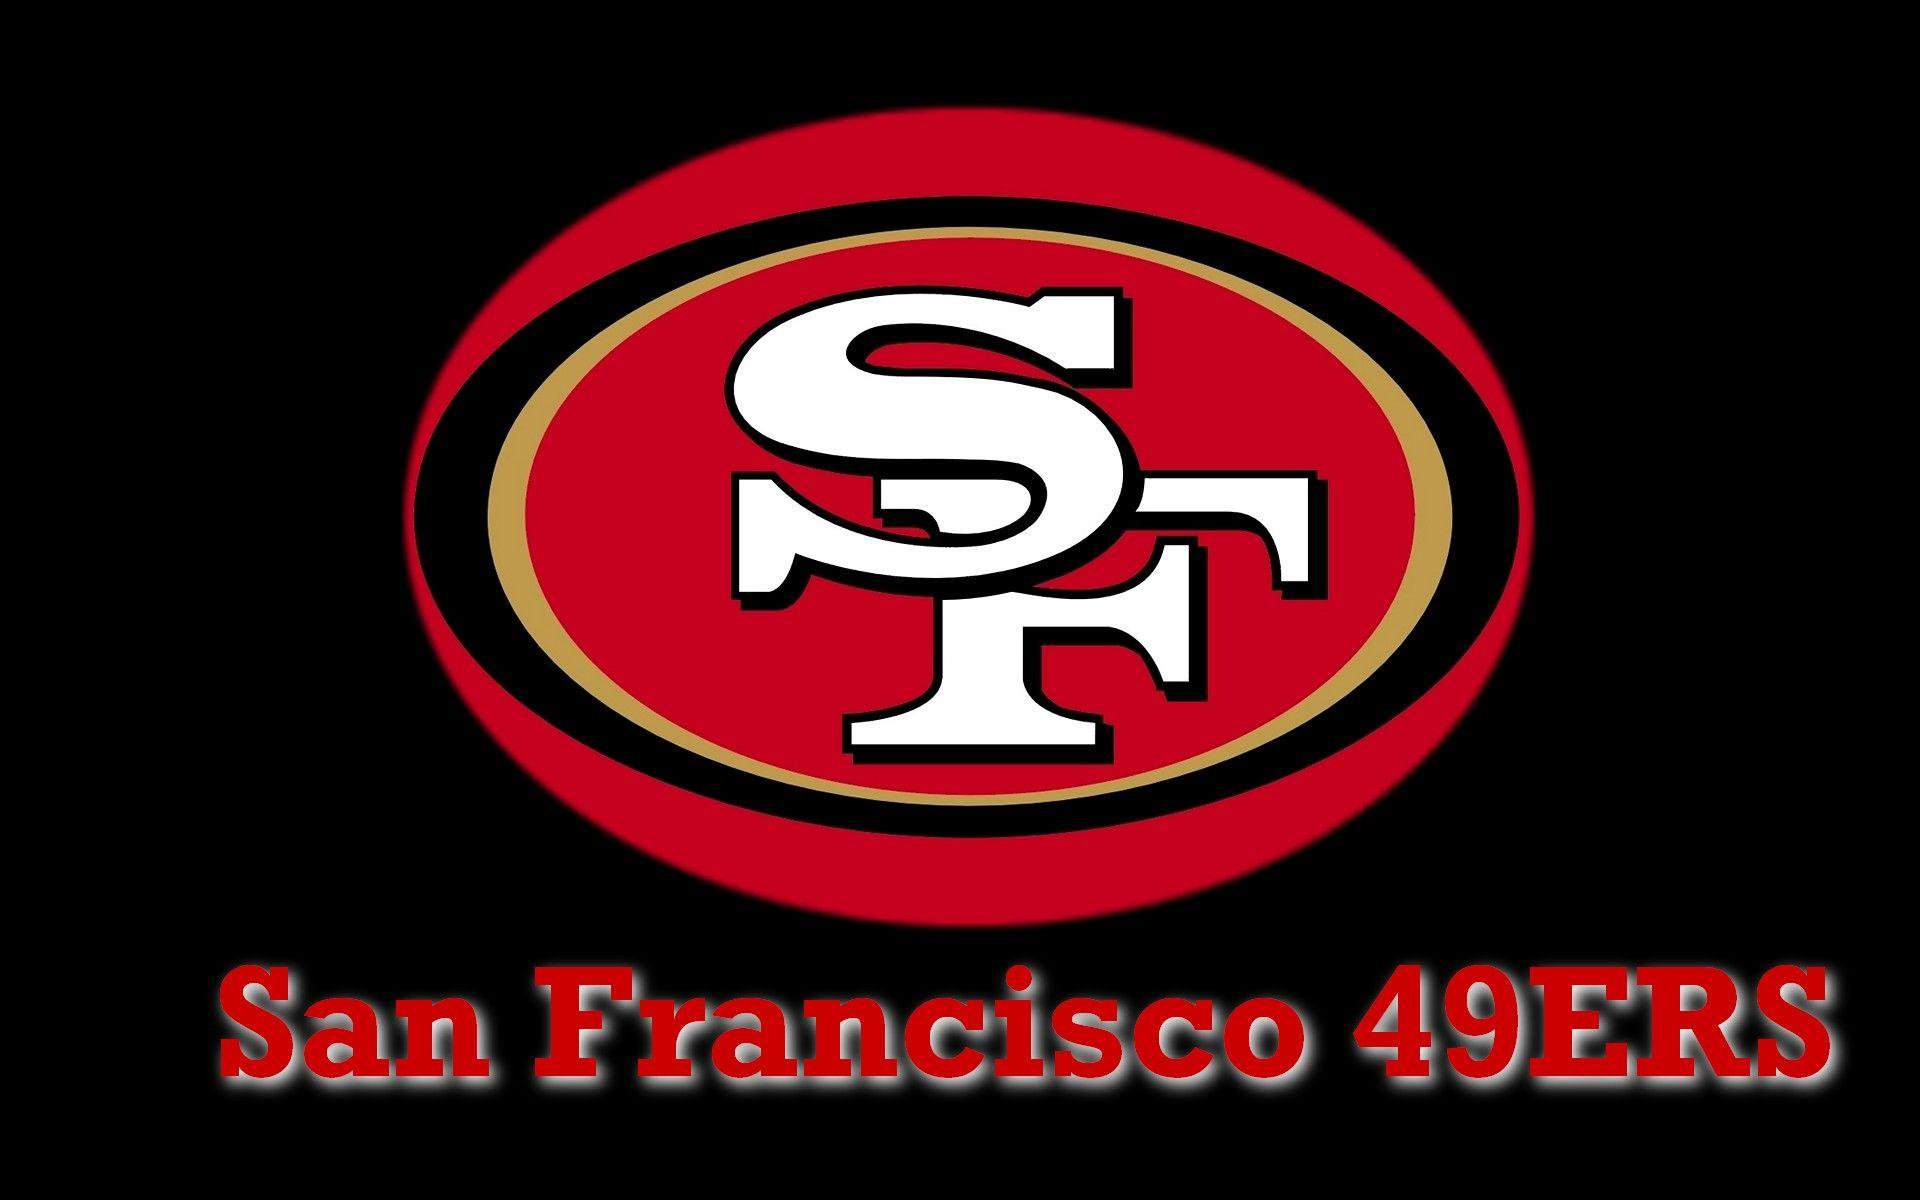 San Francisco 49ers Wallpapers #546 Wallpaper | All Best Image ...